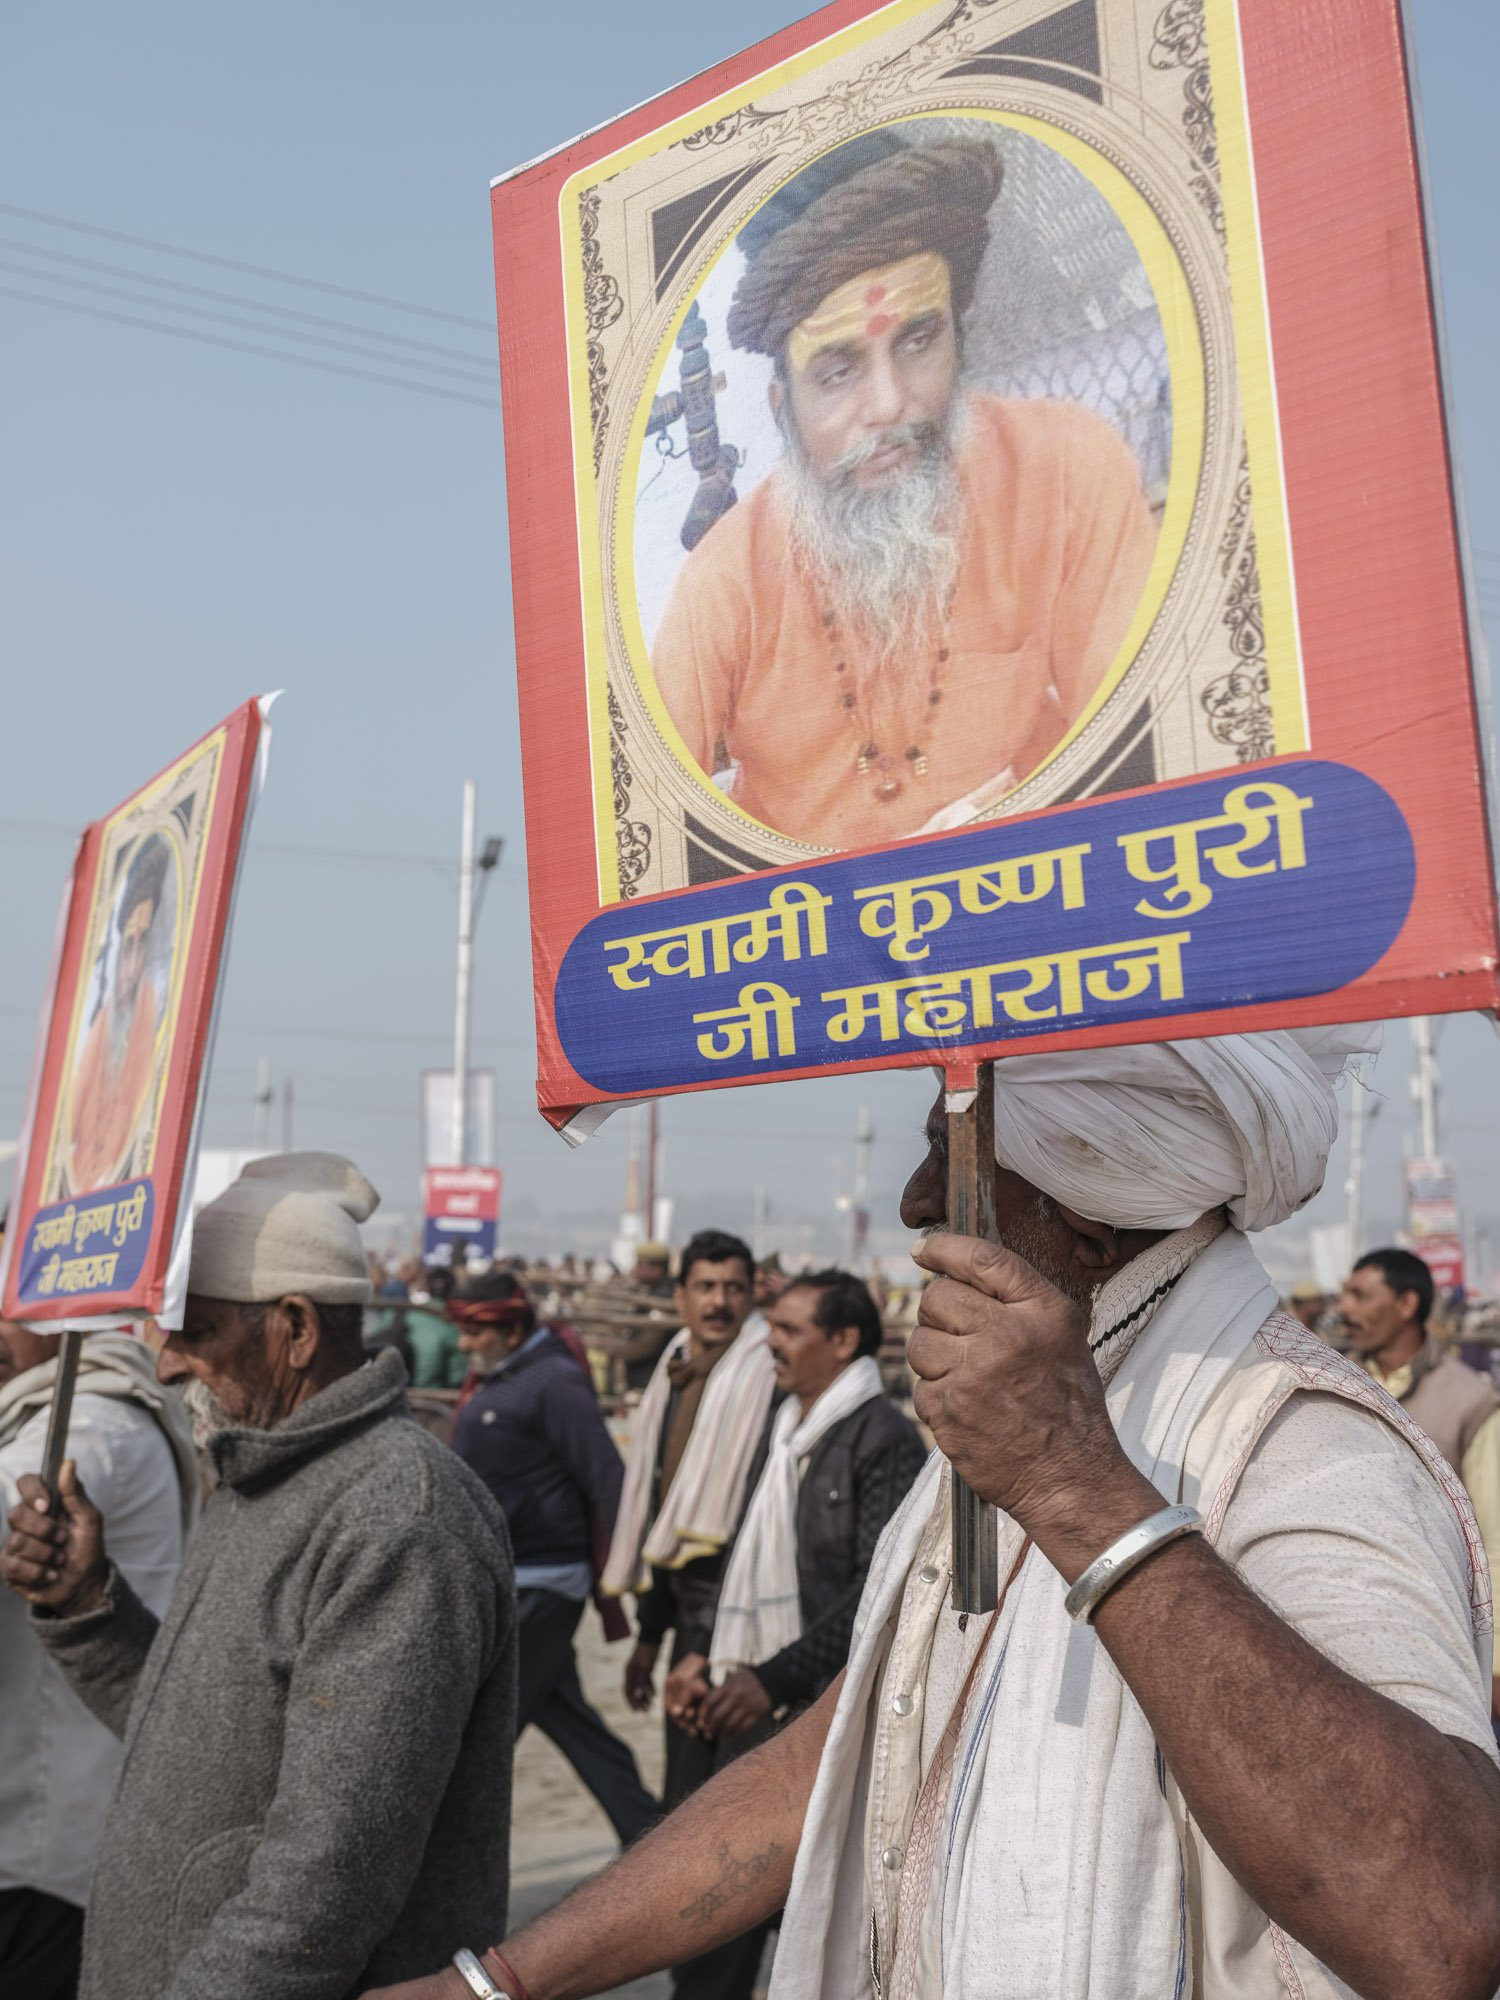 baba picture print crowd 4 February pilgrims Kumbh mela 2019 India Allahabad Prayagraj Ardh hindu religious Festival event rivers photographer jose jeuland photography